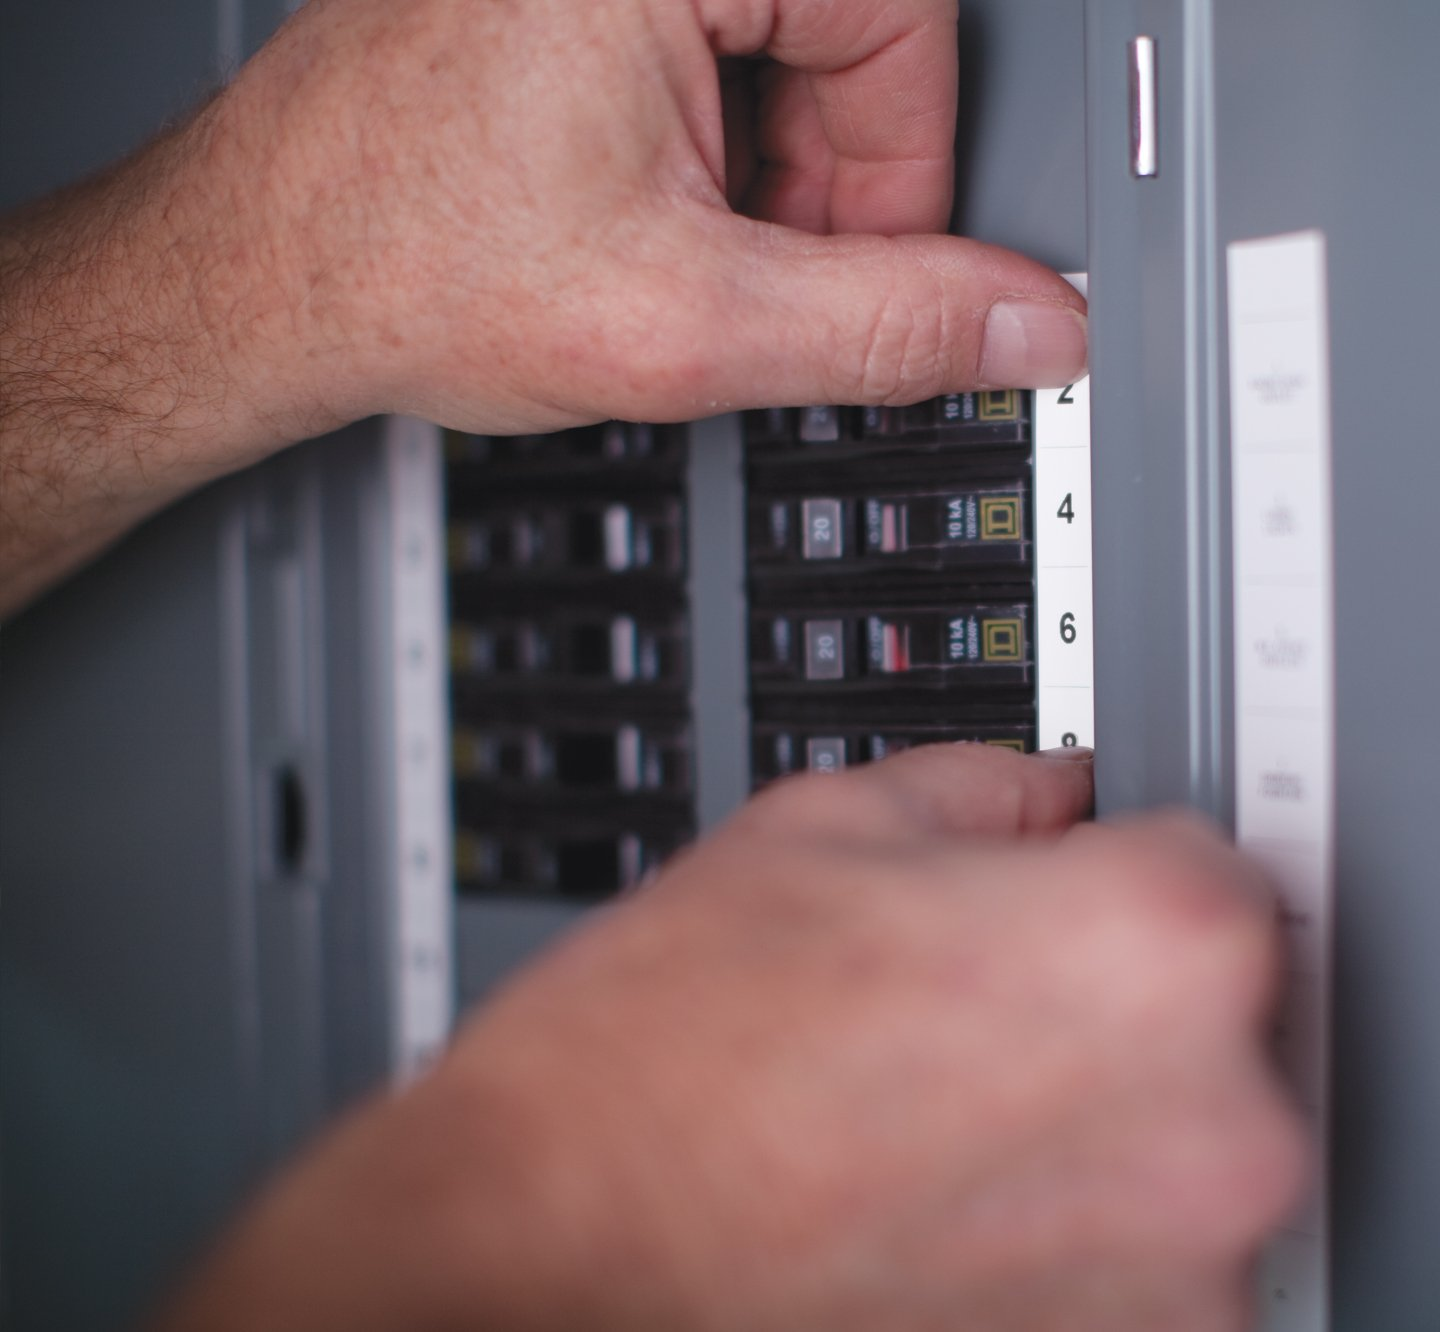 Hands placing a label onto a fuse box.